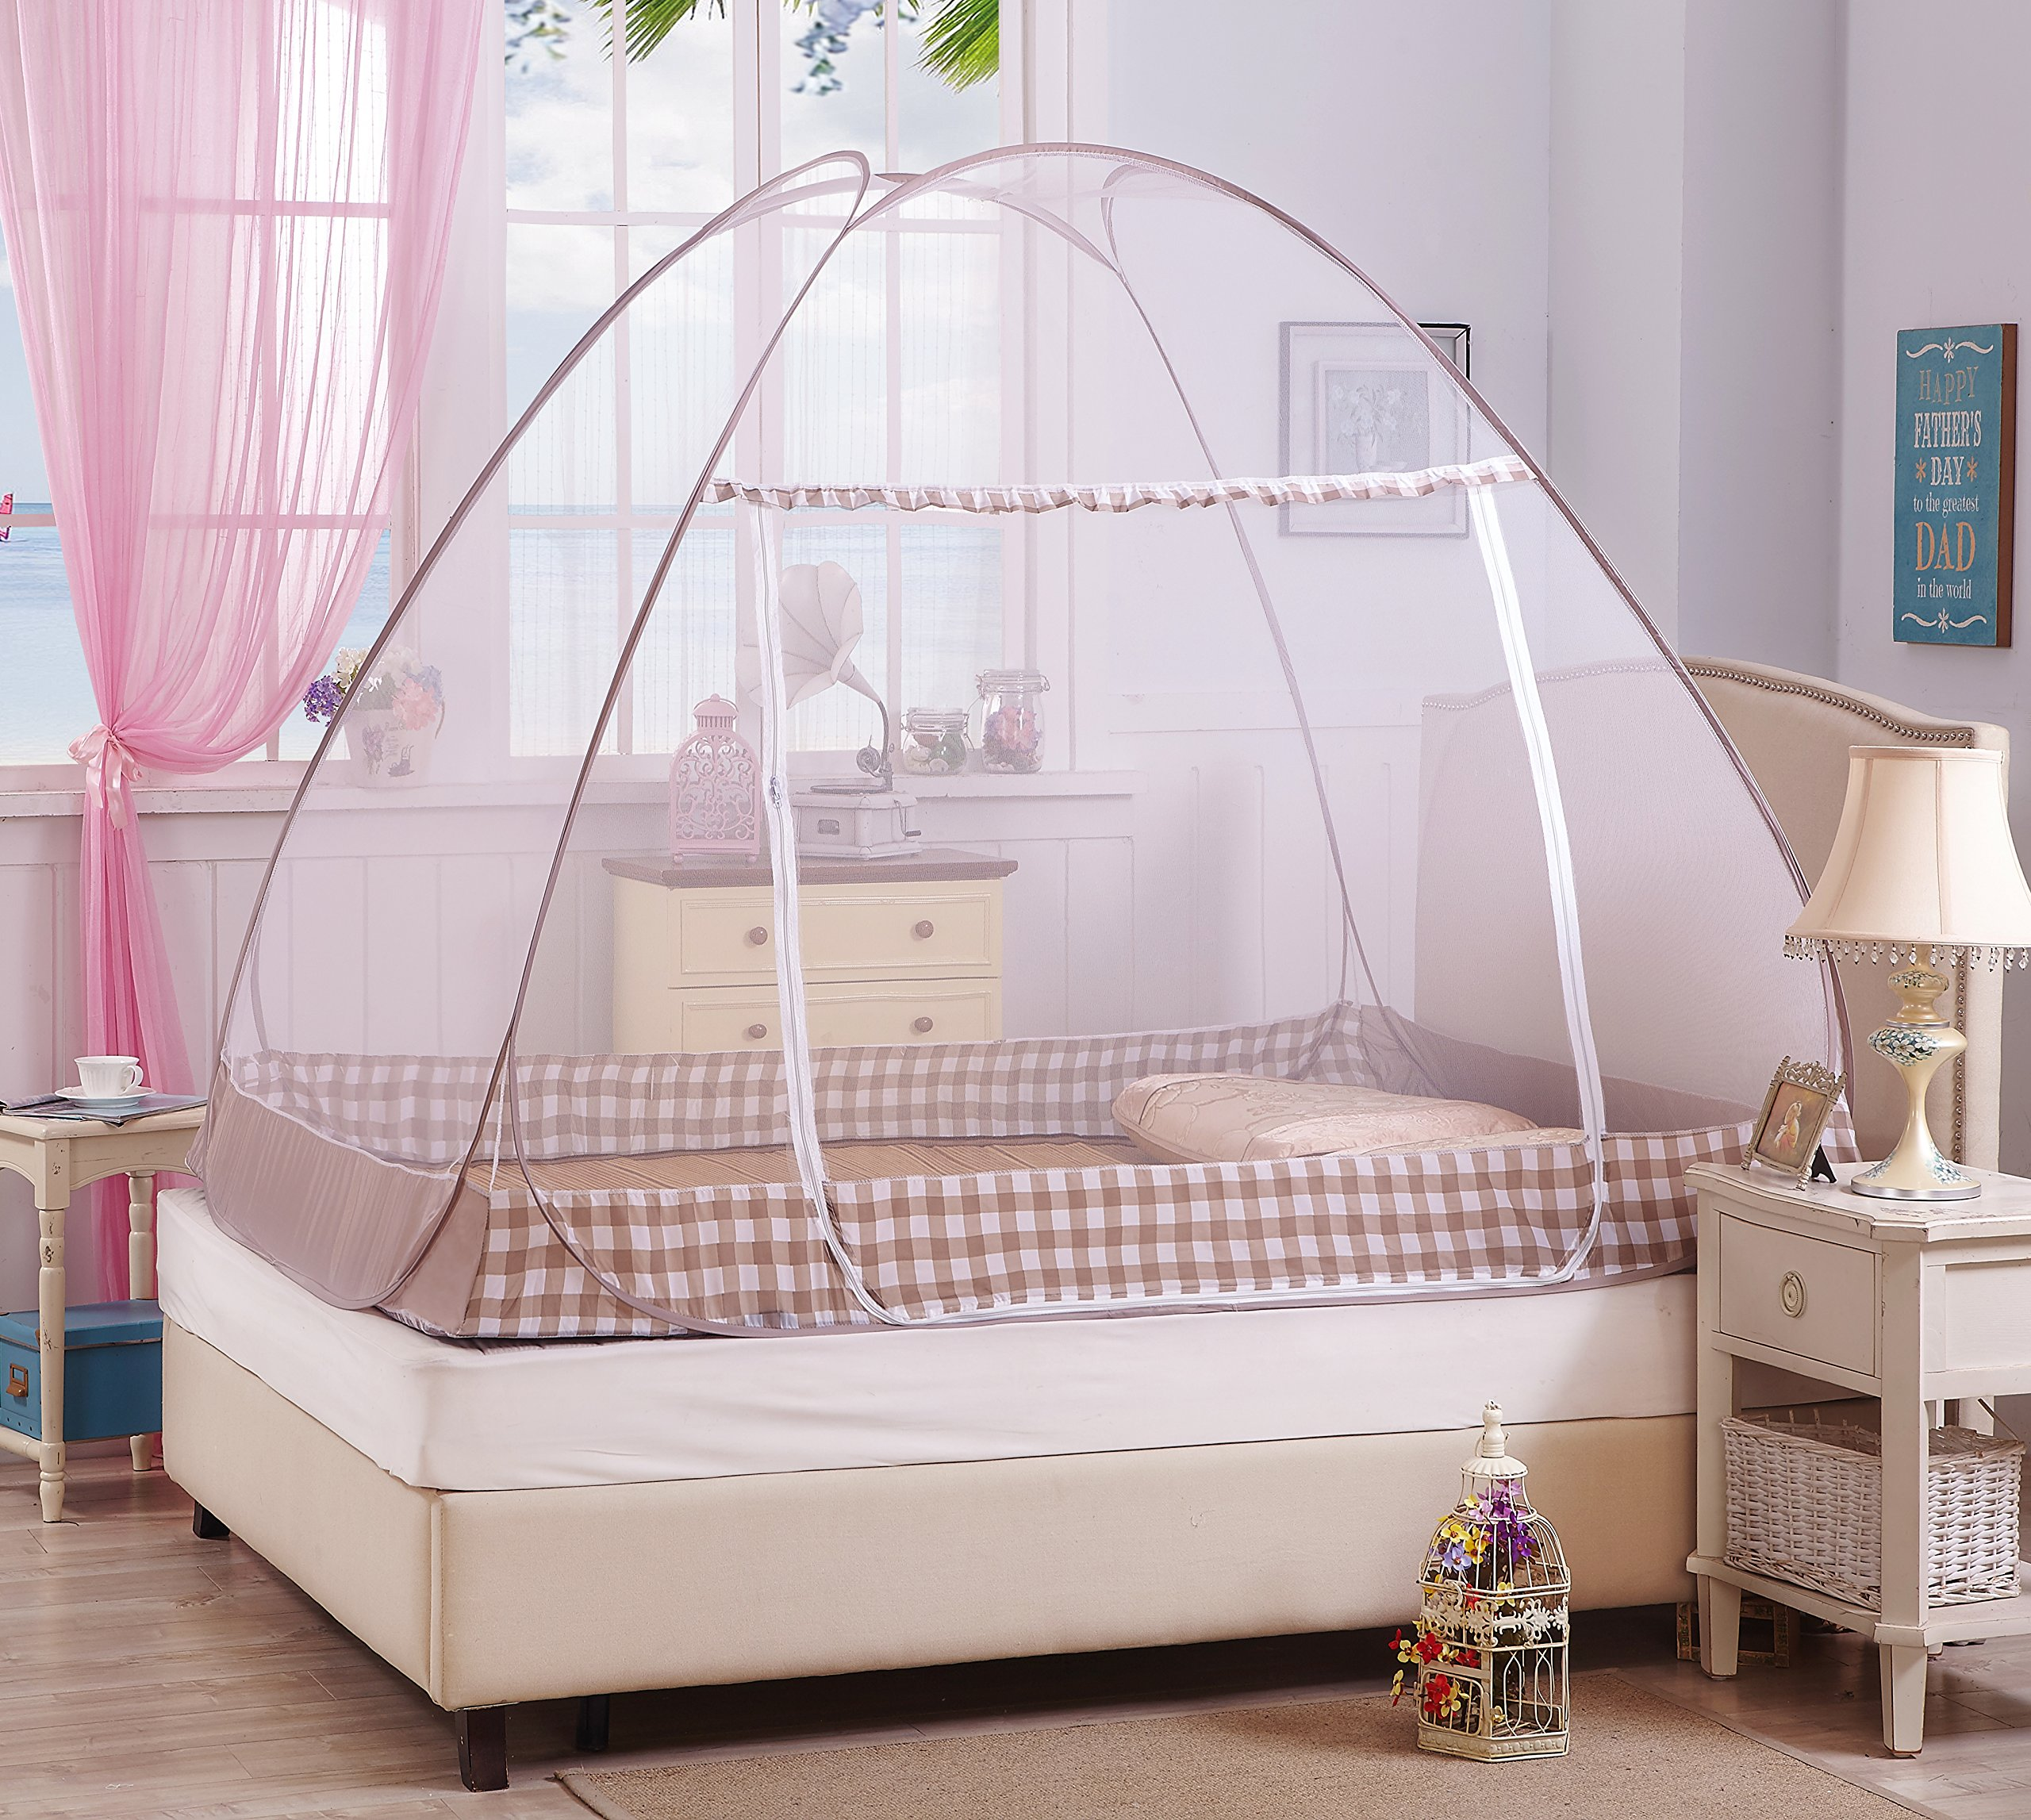 Hasika Pop-Up Mosquito/Folding Mosquito Net Tent Canopy Curtains for Beds Anti Mosquito Bites Folding Design with net Bottom for Babys Adults Trip(59 x 79 x 58 inches) by Hasika